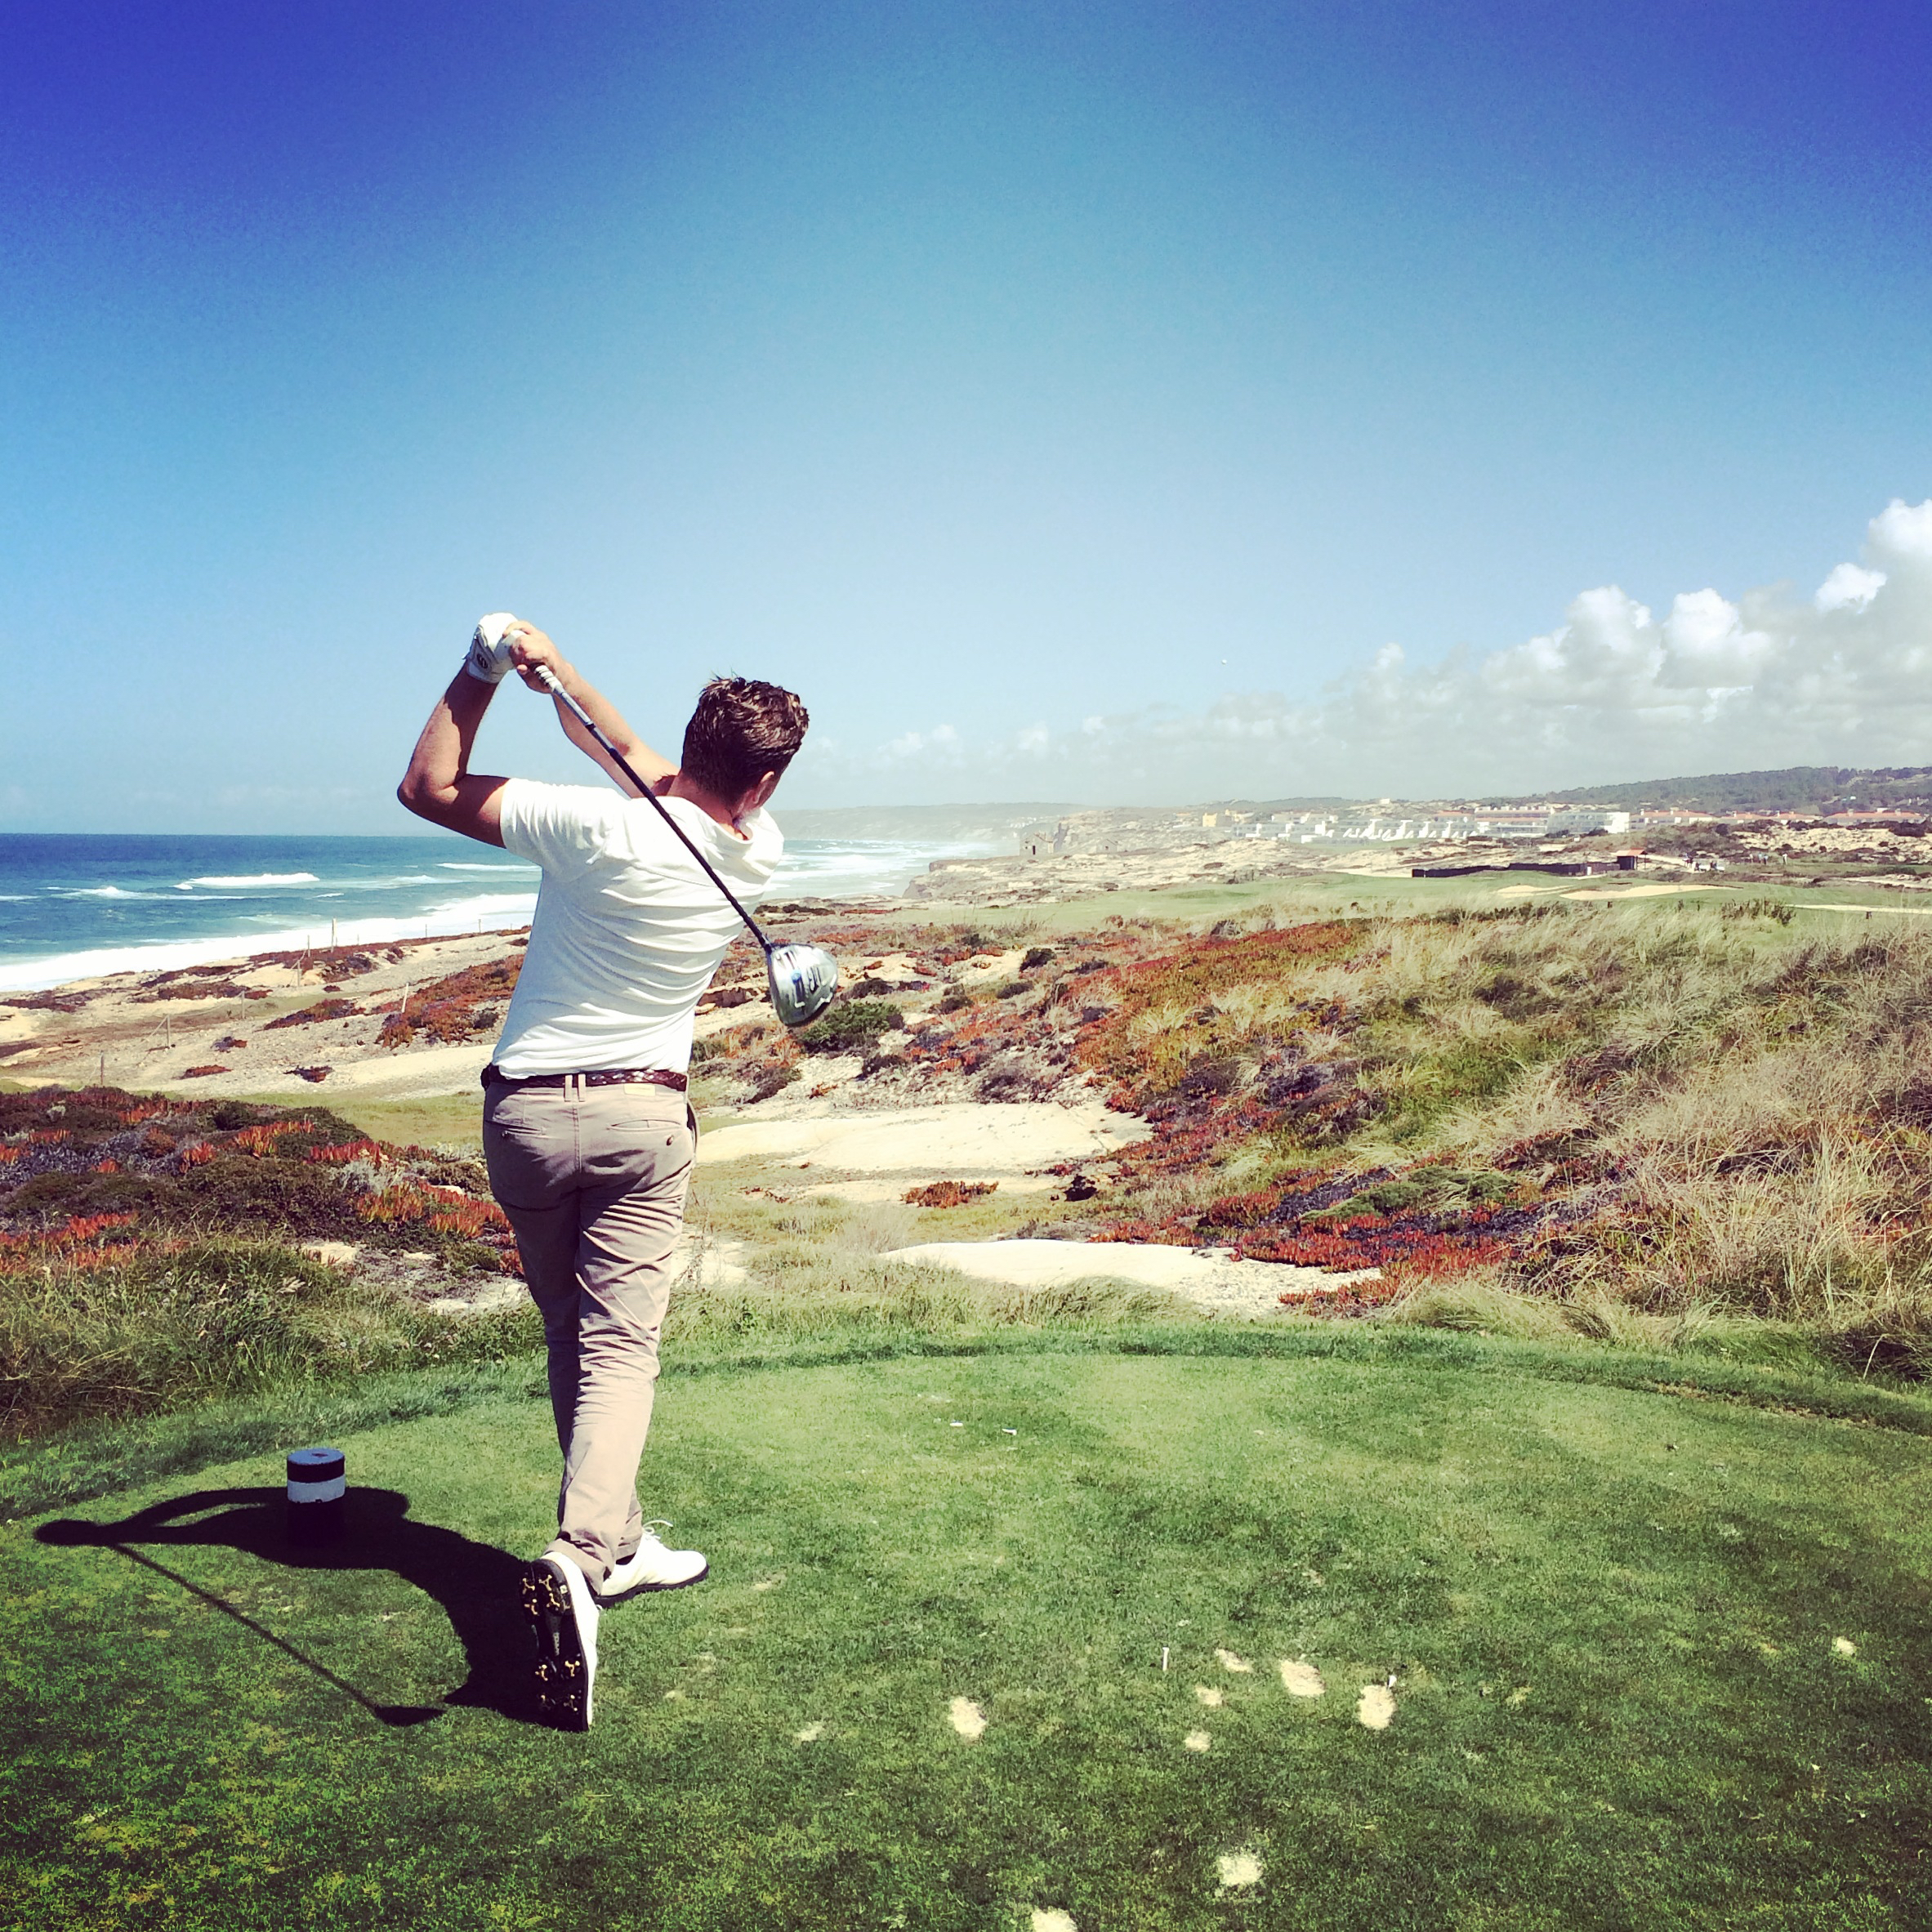 christian-josefsson-golf-portugal-2015